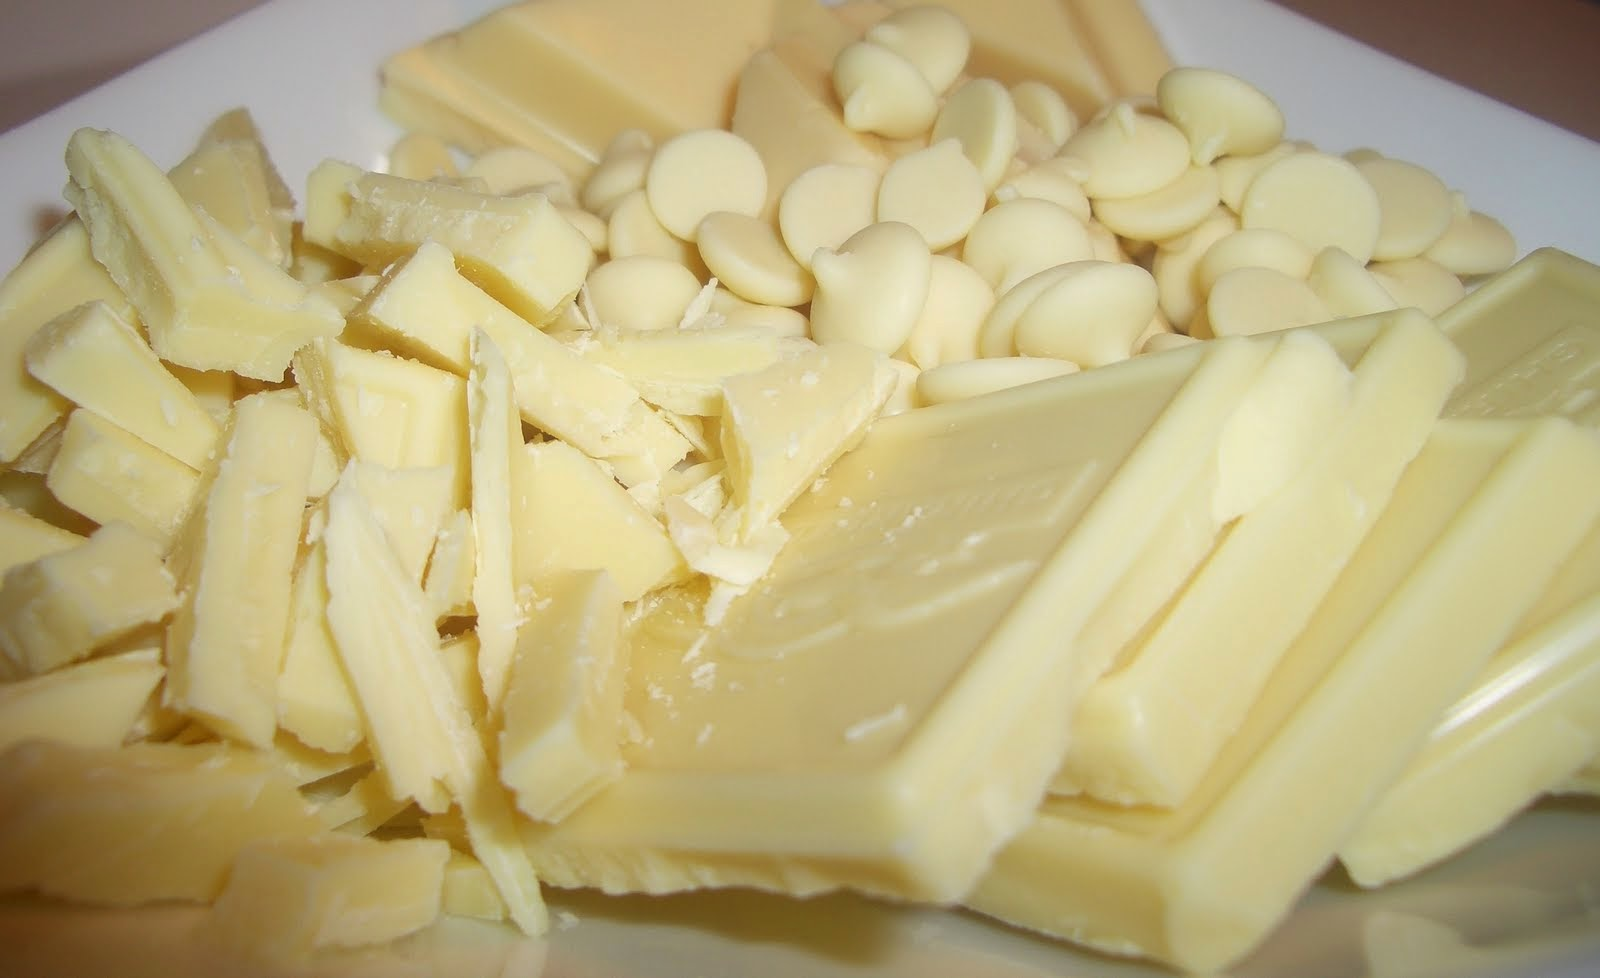 http://foodimentary.com/2013/09/22/national-white-chocolate-day/